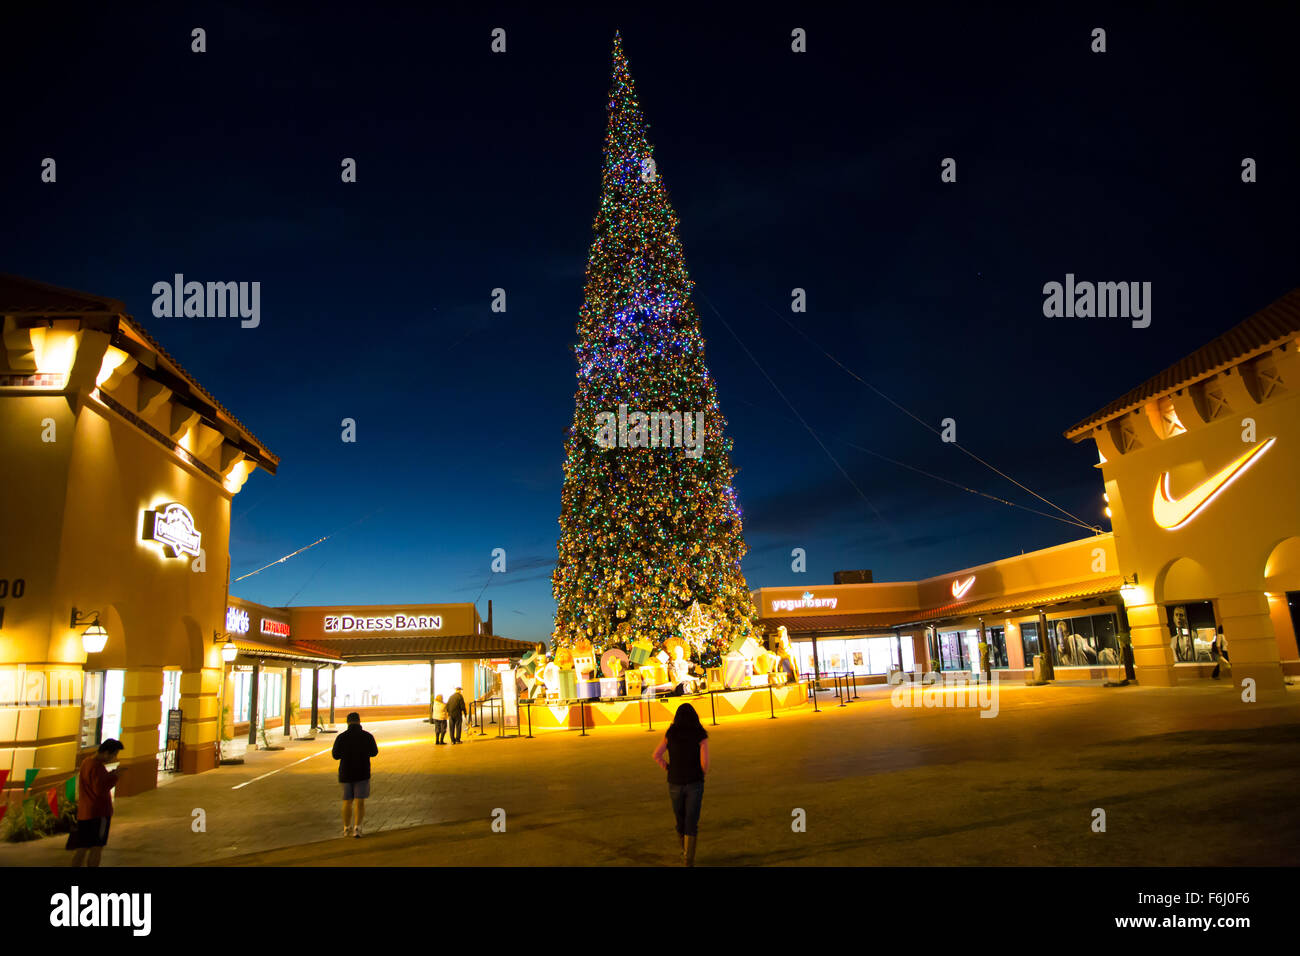 The Outlets at Anthem, Arizona - Tallest Cut Christmas ...